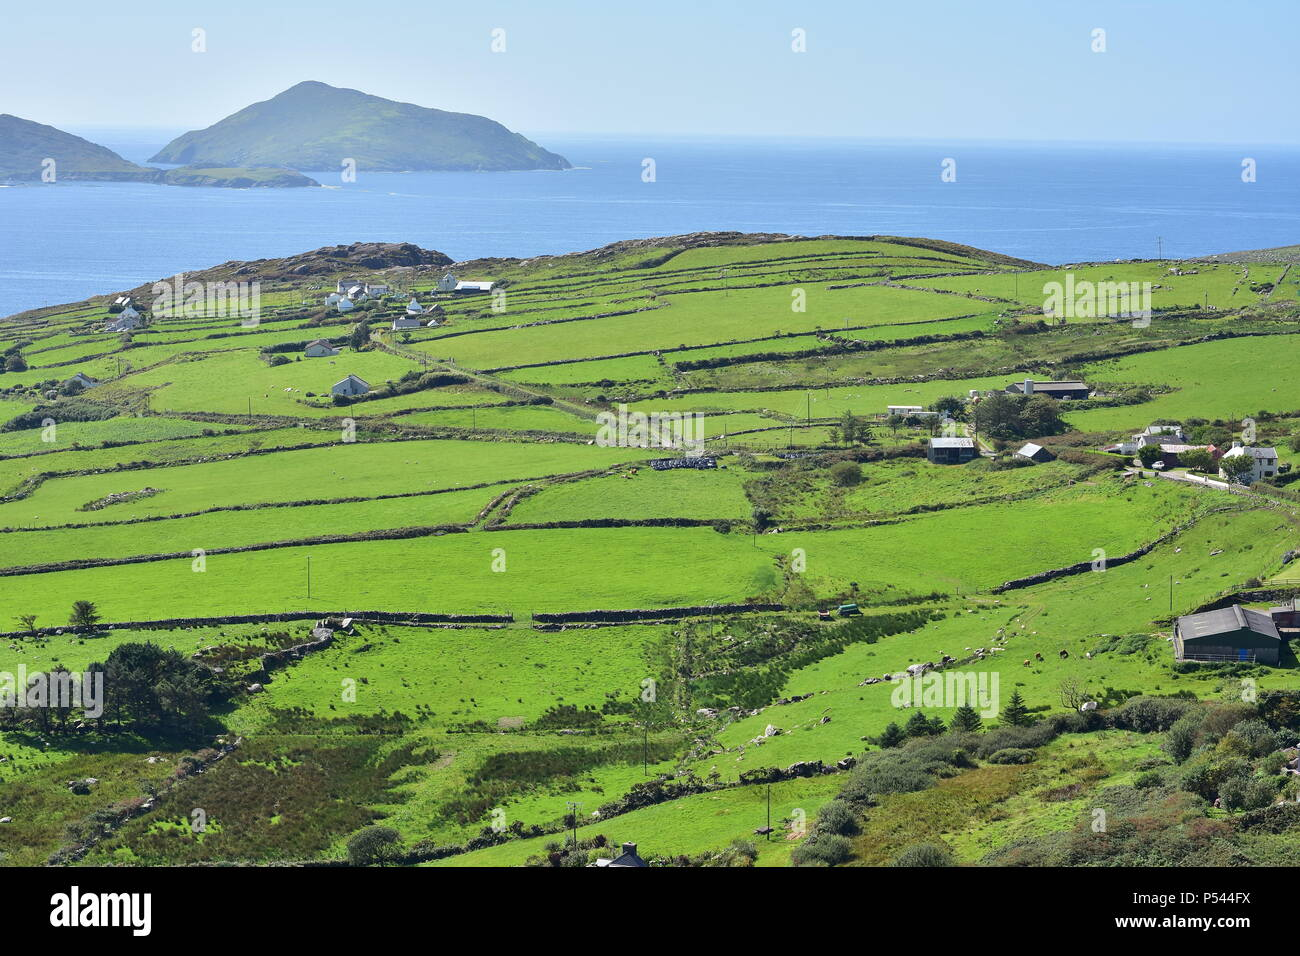 Summer green fields of west coast of Ireland with Atlantic ocean in background. Landscape view. - Stock Image